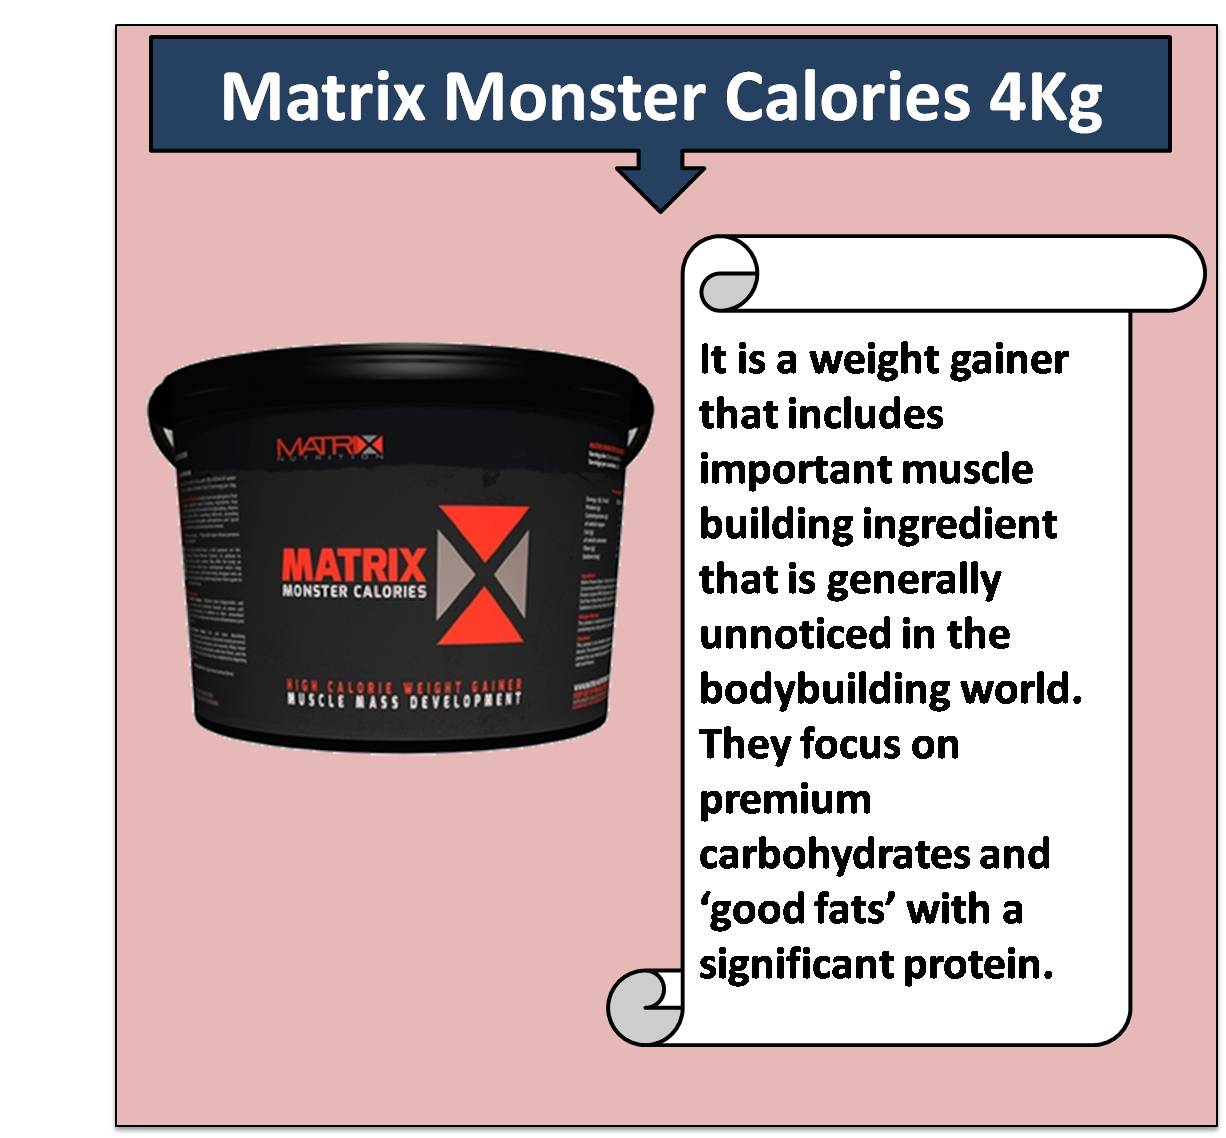 Matrix Monster Calories 4Kg